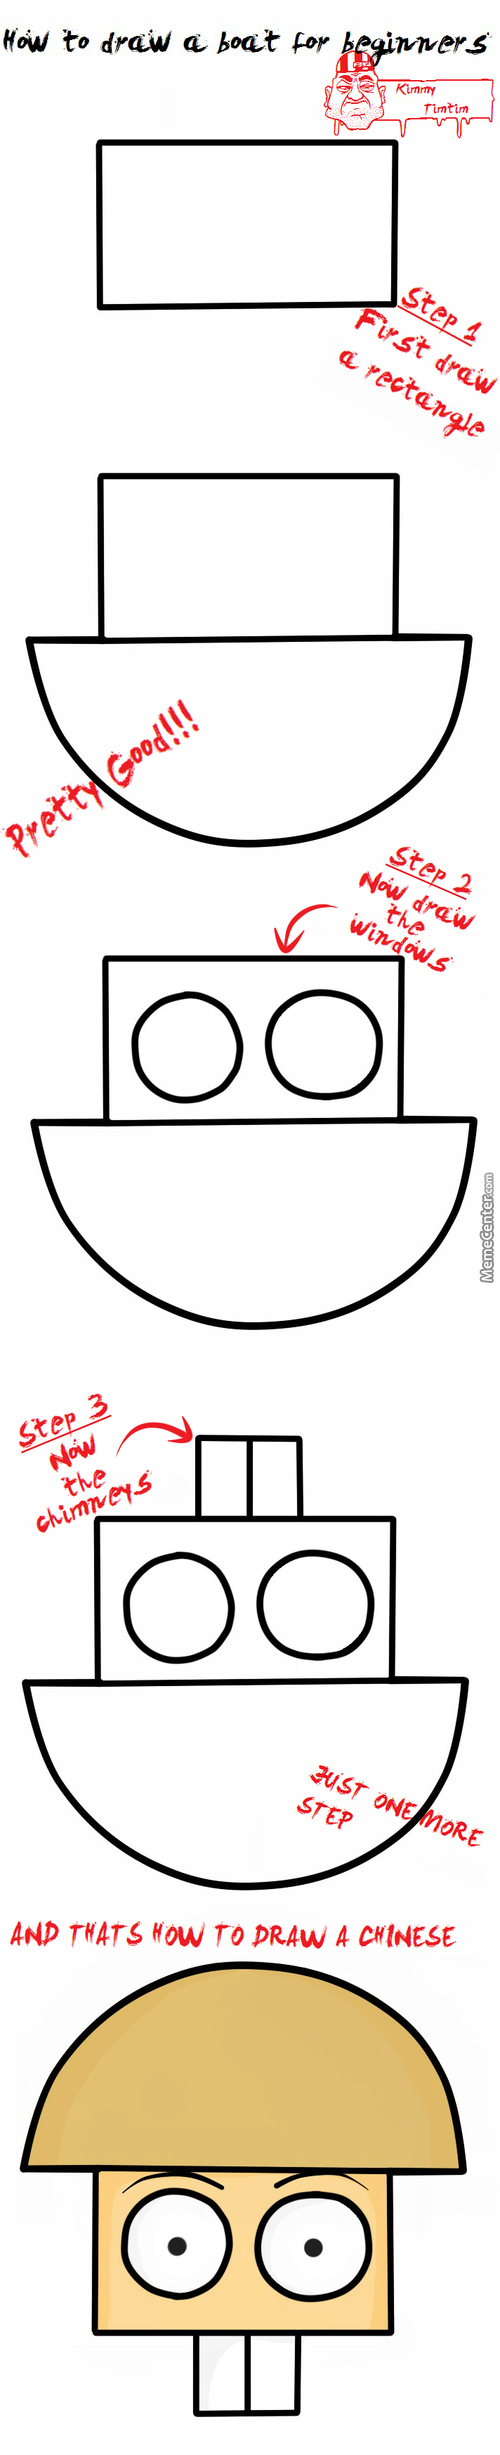 How To Draw A Boat ((Sorry If This Offends People,when I Get An Idea I Cant Help It))